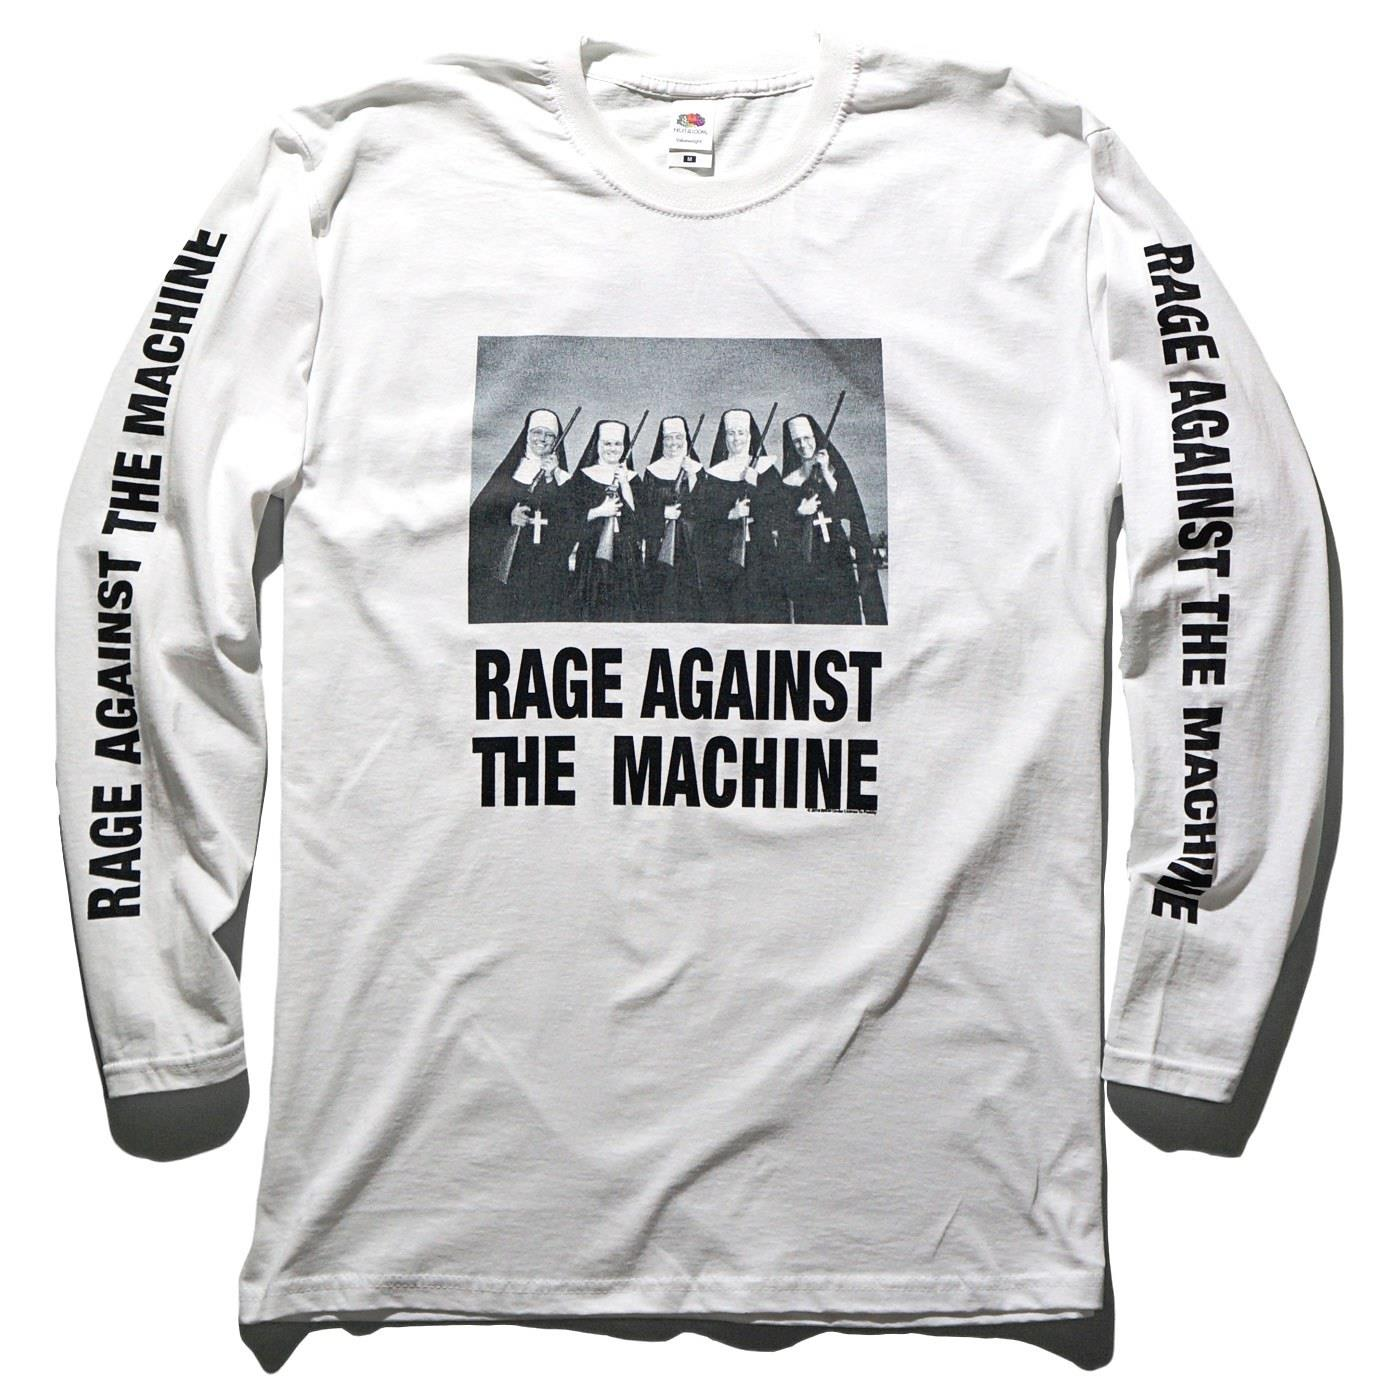 RAGE AGAINST THE MACHINE ロングスリーブTシャツ Nuns And Guns-White